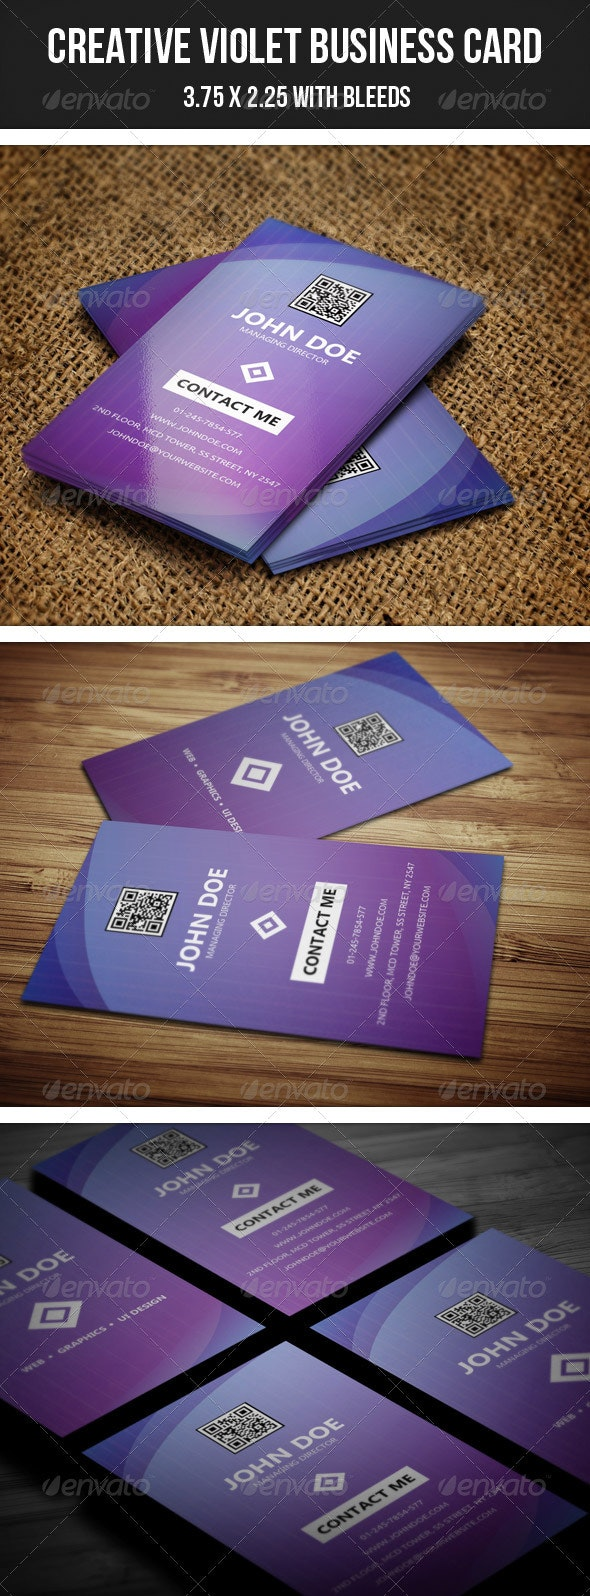 Creative Violet Business Card - Business Cards Print Templates